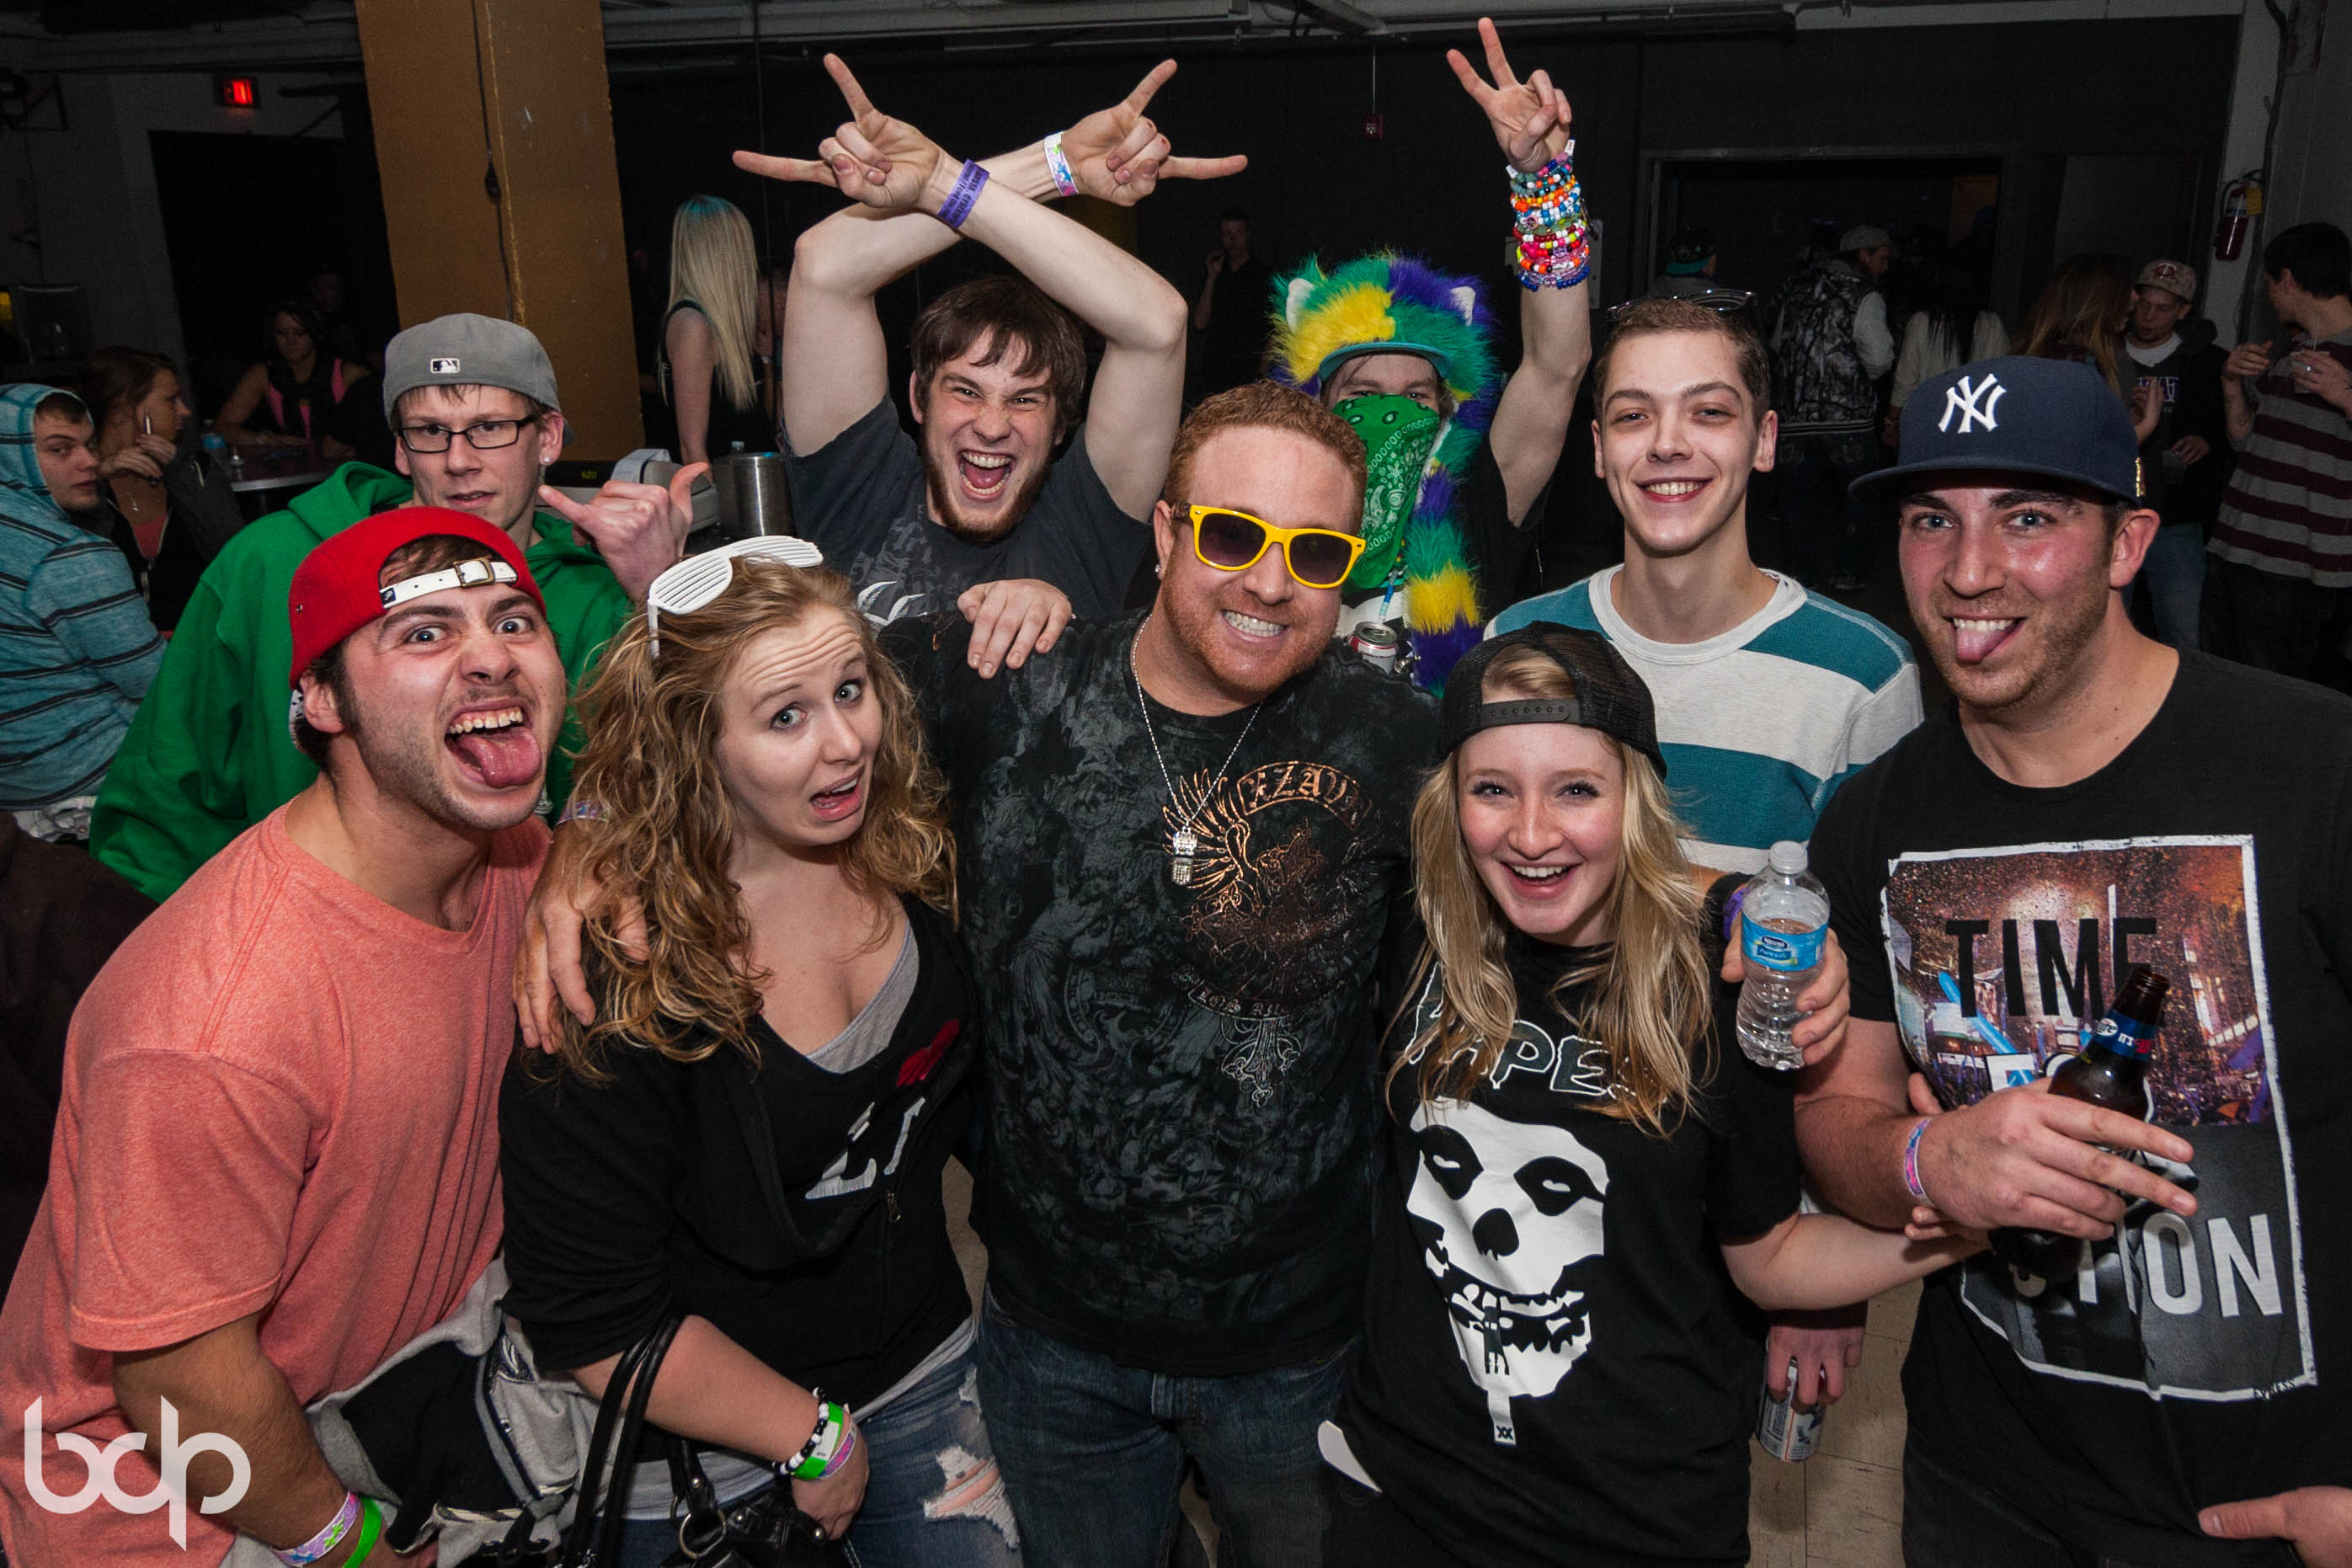 Bass Riot ft. DjAhsta, Cyberoptics, Jphelps at The Loft 122113 BDP-33.jpg